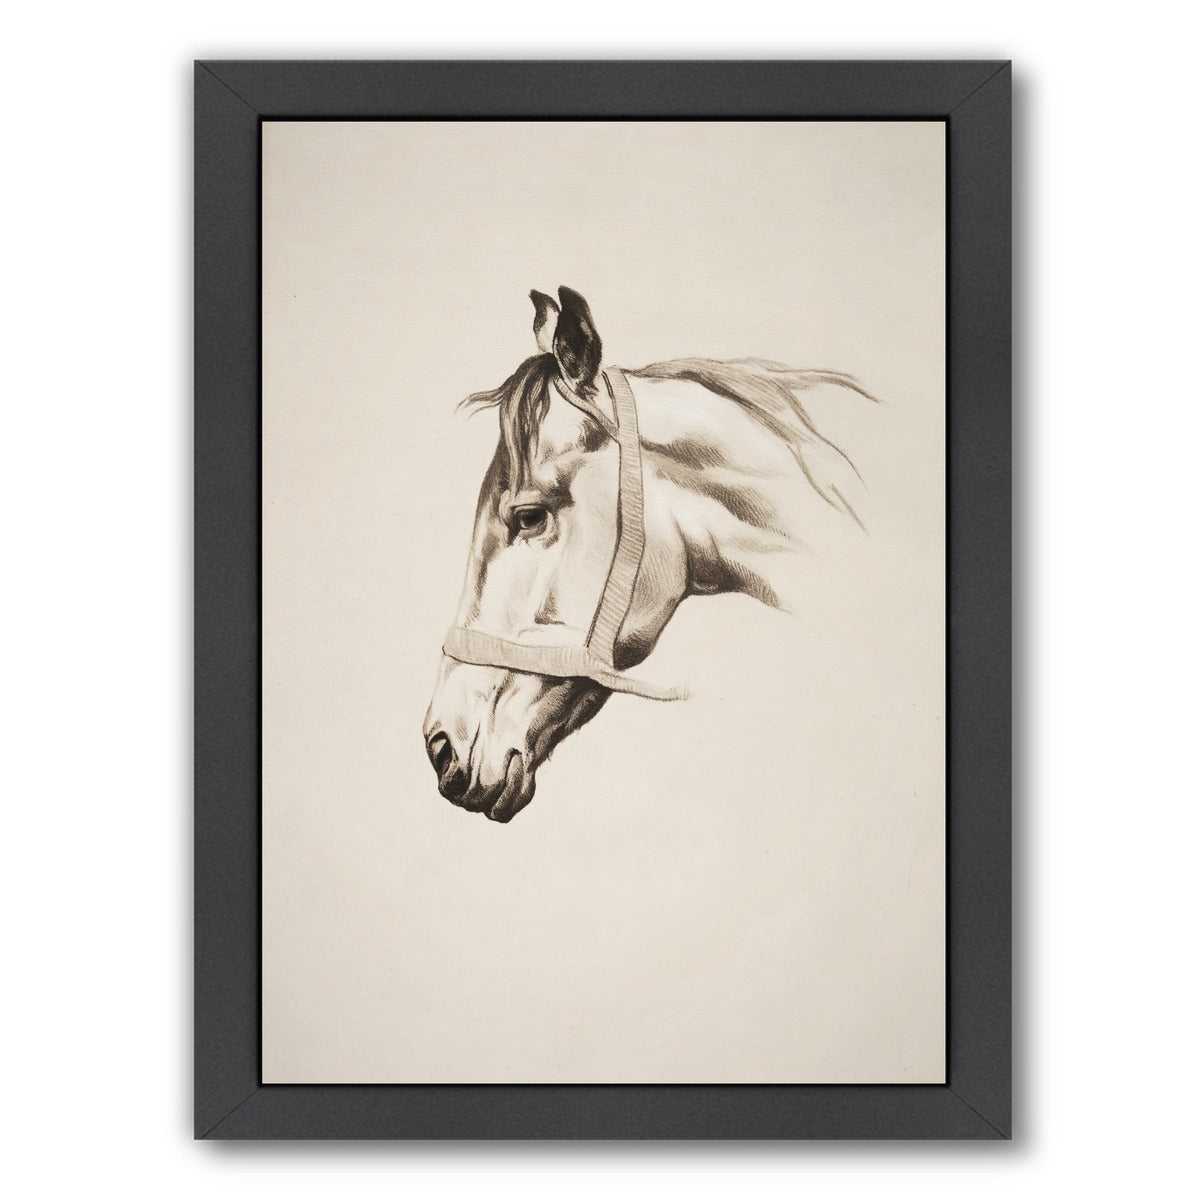 "Horse Head Ii By Chaos & Wonder Design - Black Framed Print, Wall Art, Chaos & Wonder Design, 8"" x 10"""